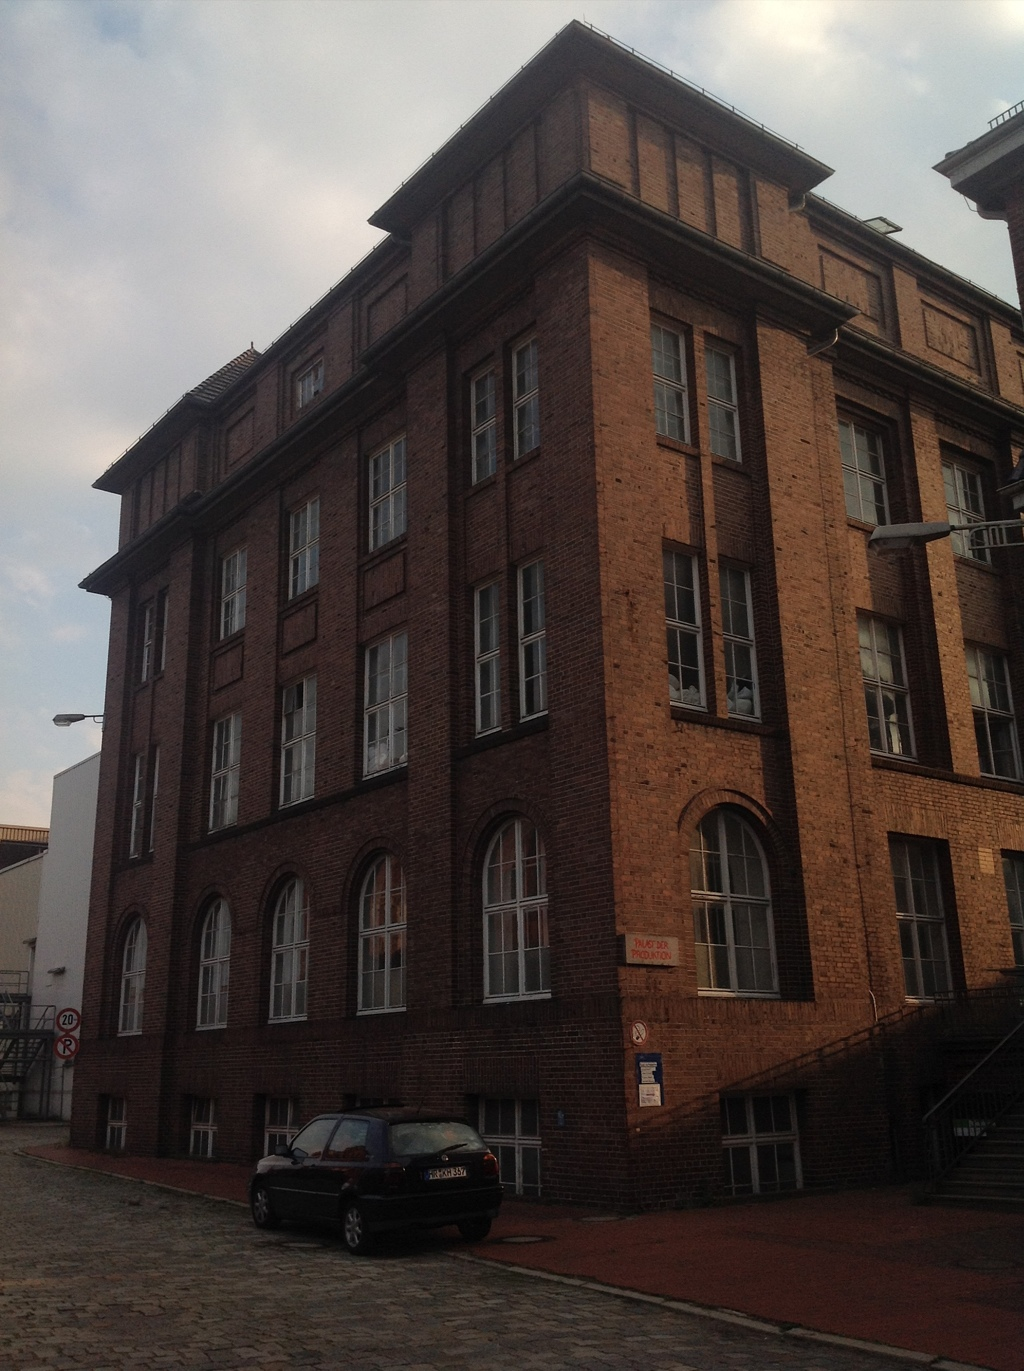 The building on the outside